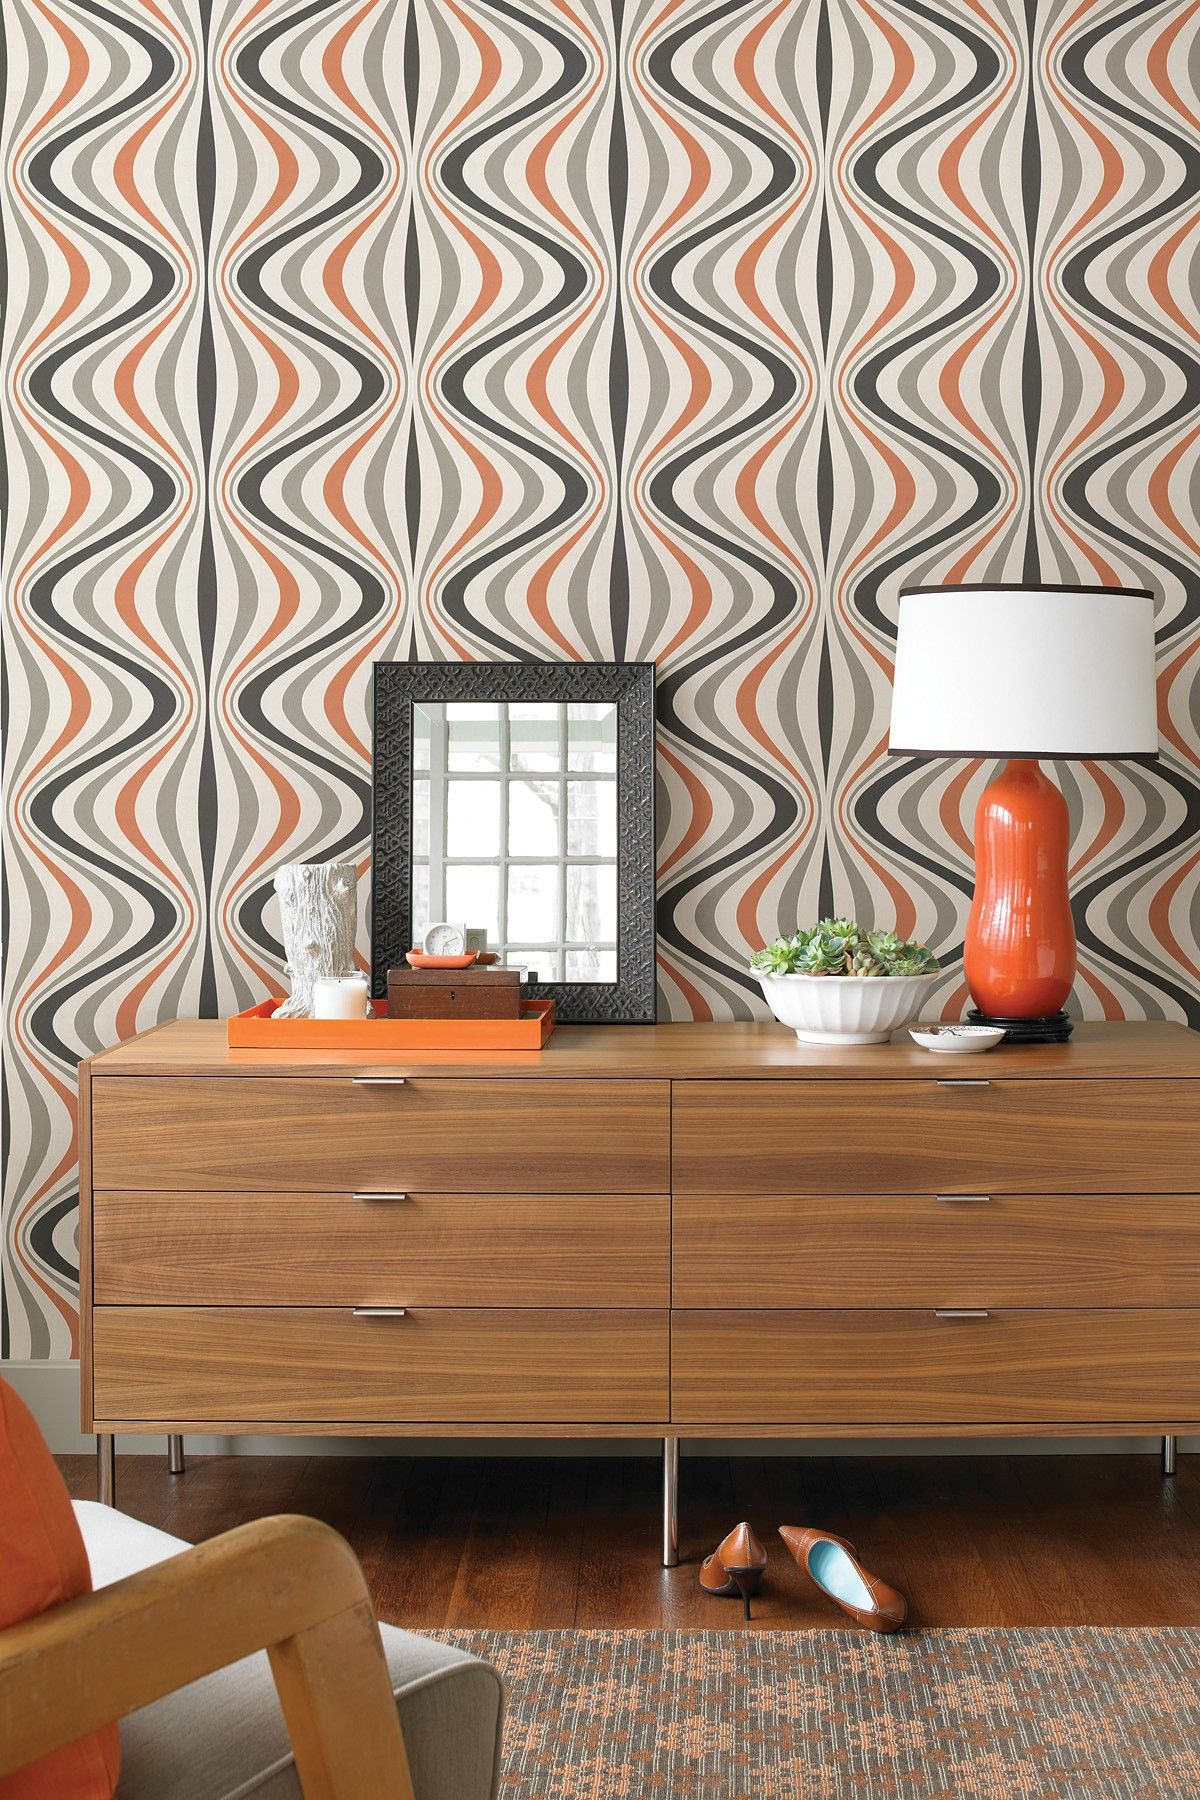 Modern Wallpaper Designs For Living Room: Hendrix Orange Gravure Ogee Wallpaper